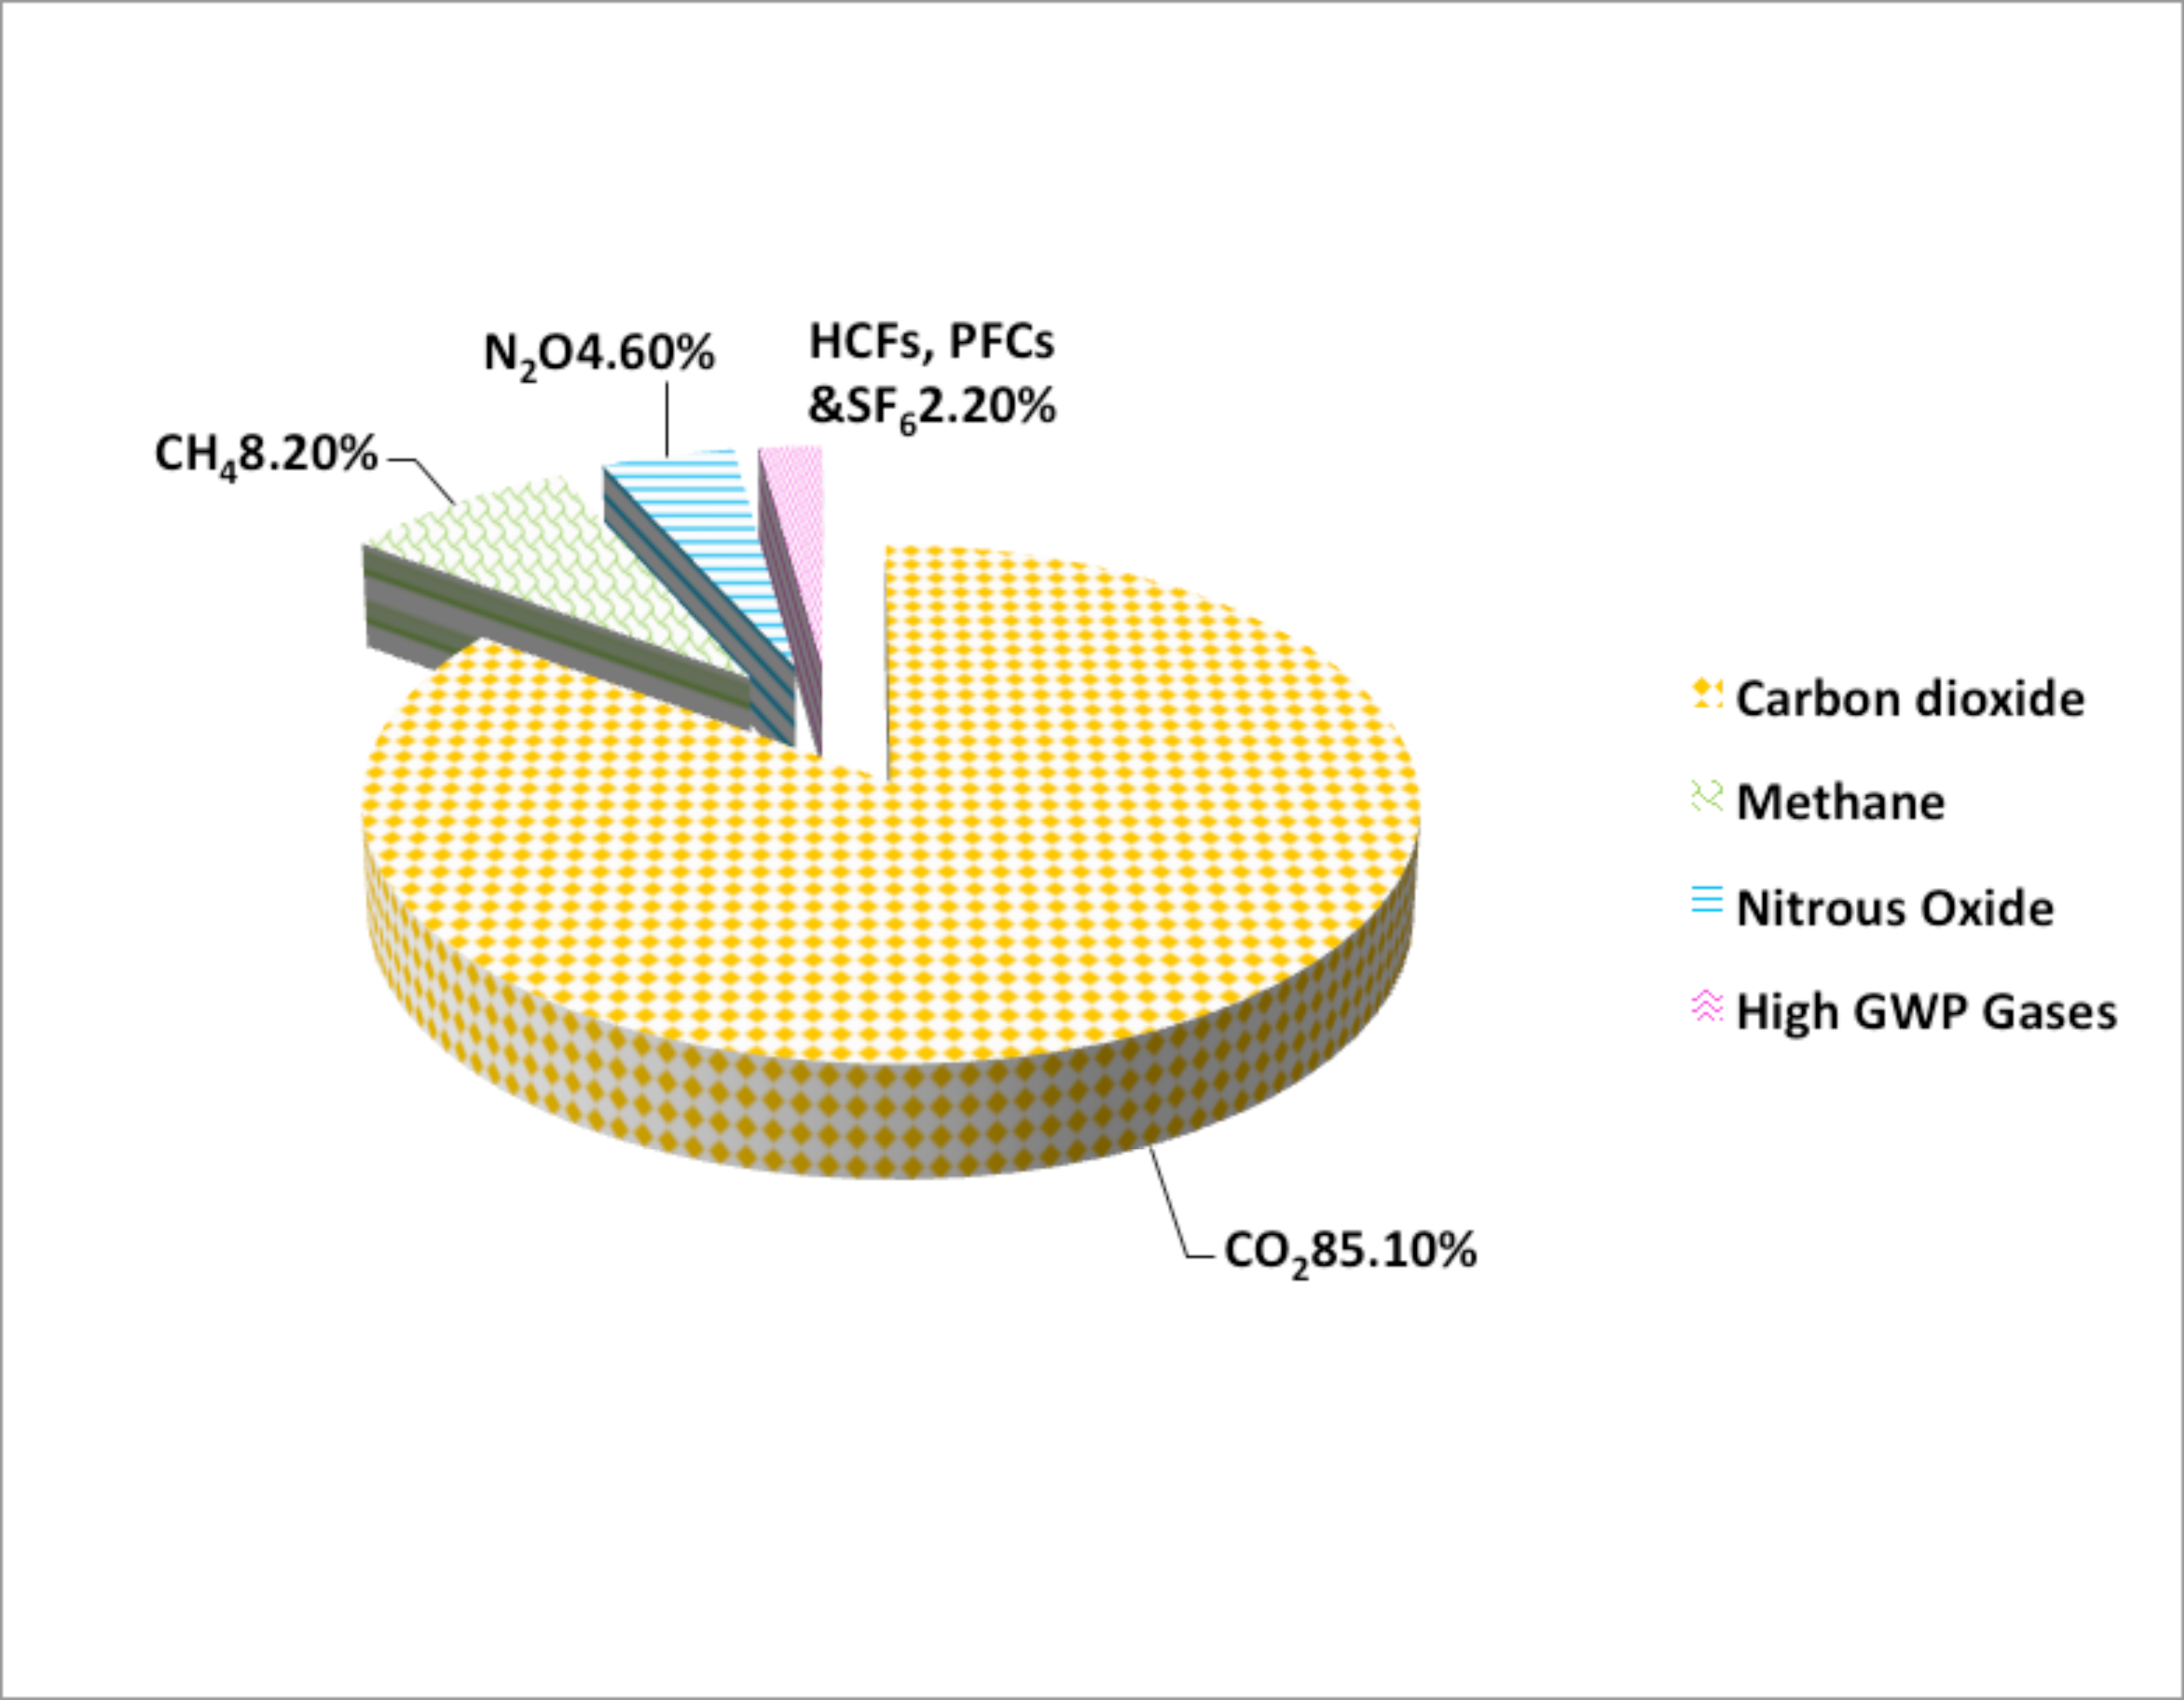 Figure 3. Distribution of greenhouse gas emissions. High global warming potential (GWP) gasses include: hydroflorocarbons, sulfur-hexafluoride, and per-fluorocarbons (U.S. EPA, 2010).